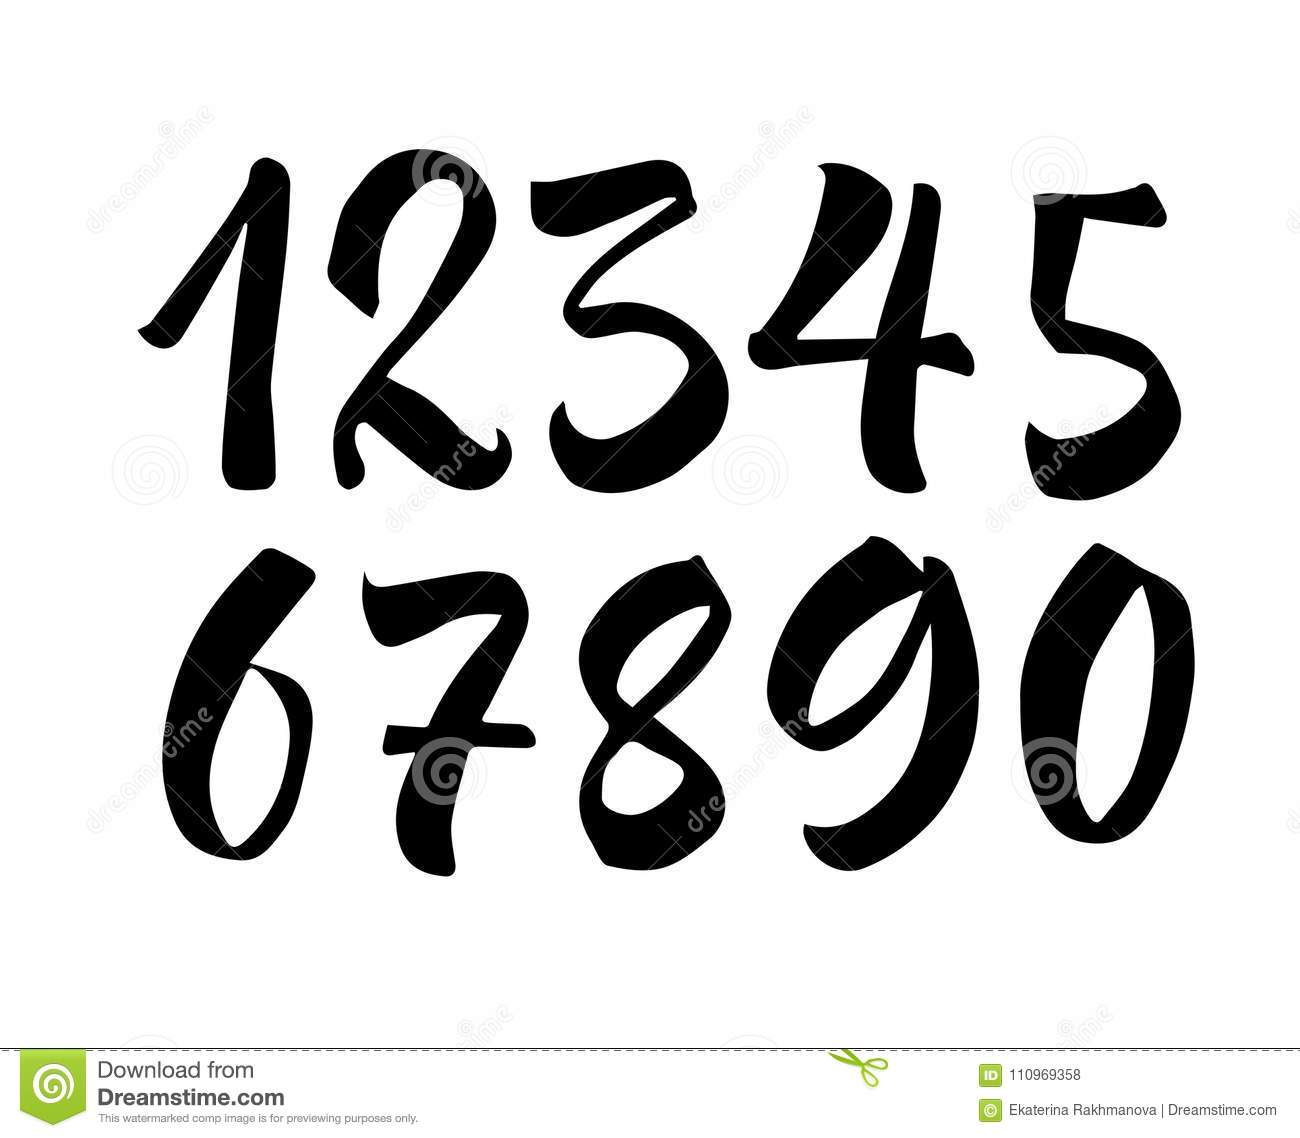 Portaoggetti Design Letters Numbers : Brush lettering numbers modern calligraphy handwritten